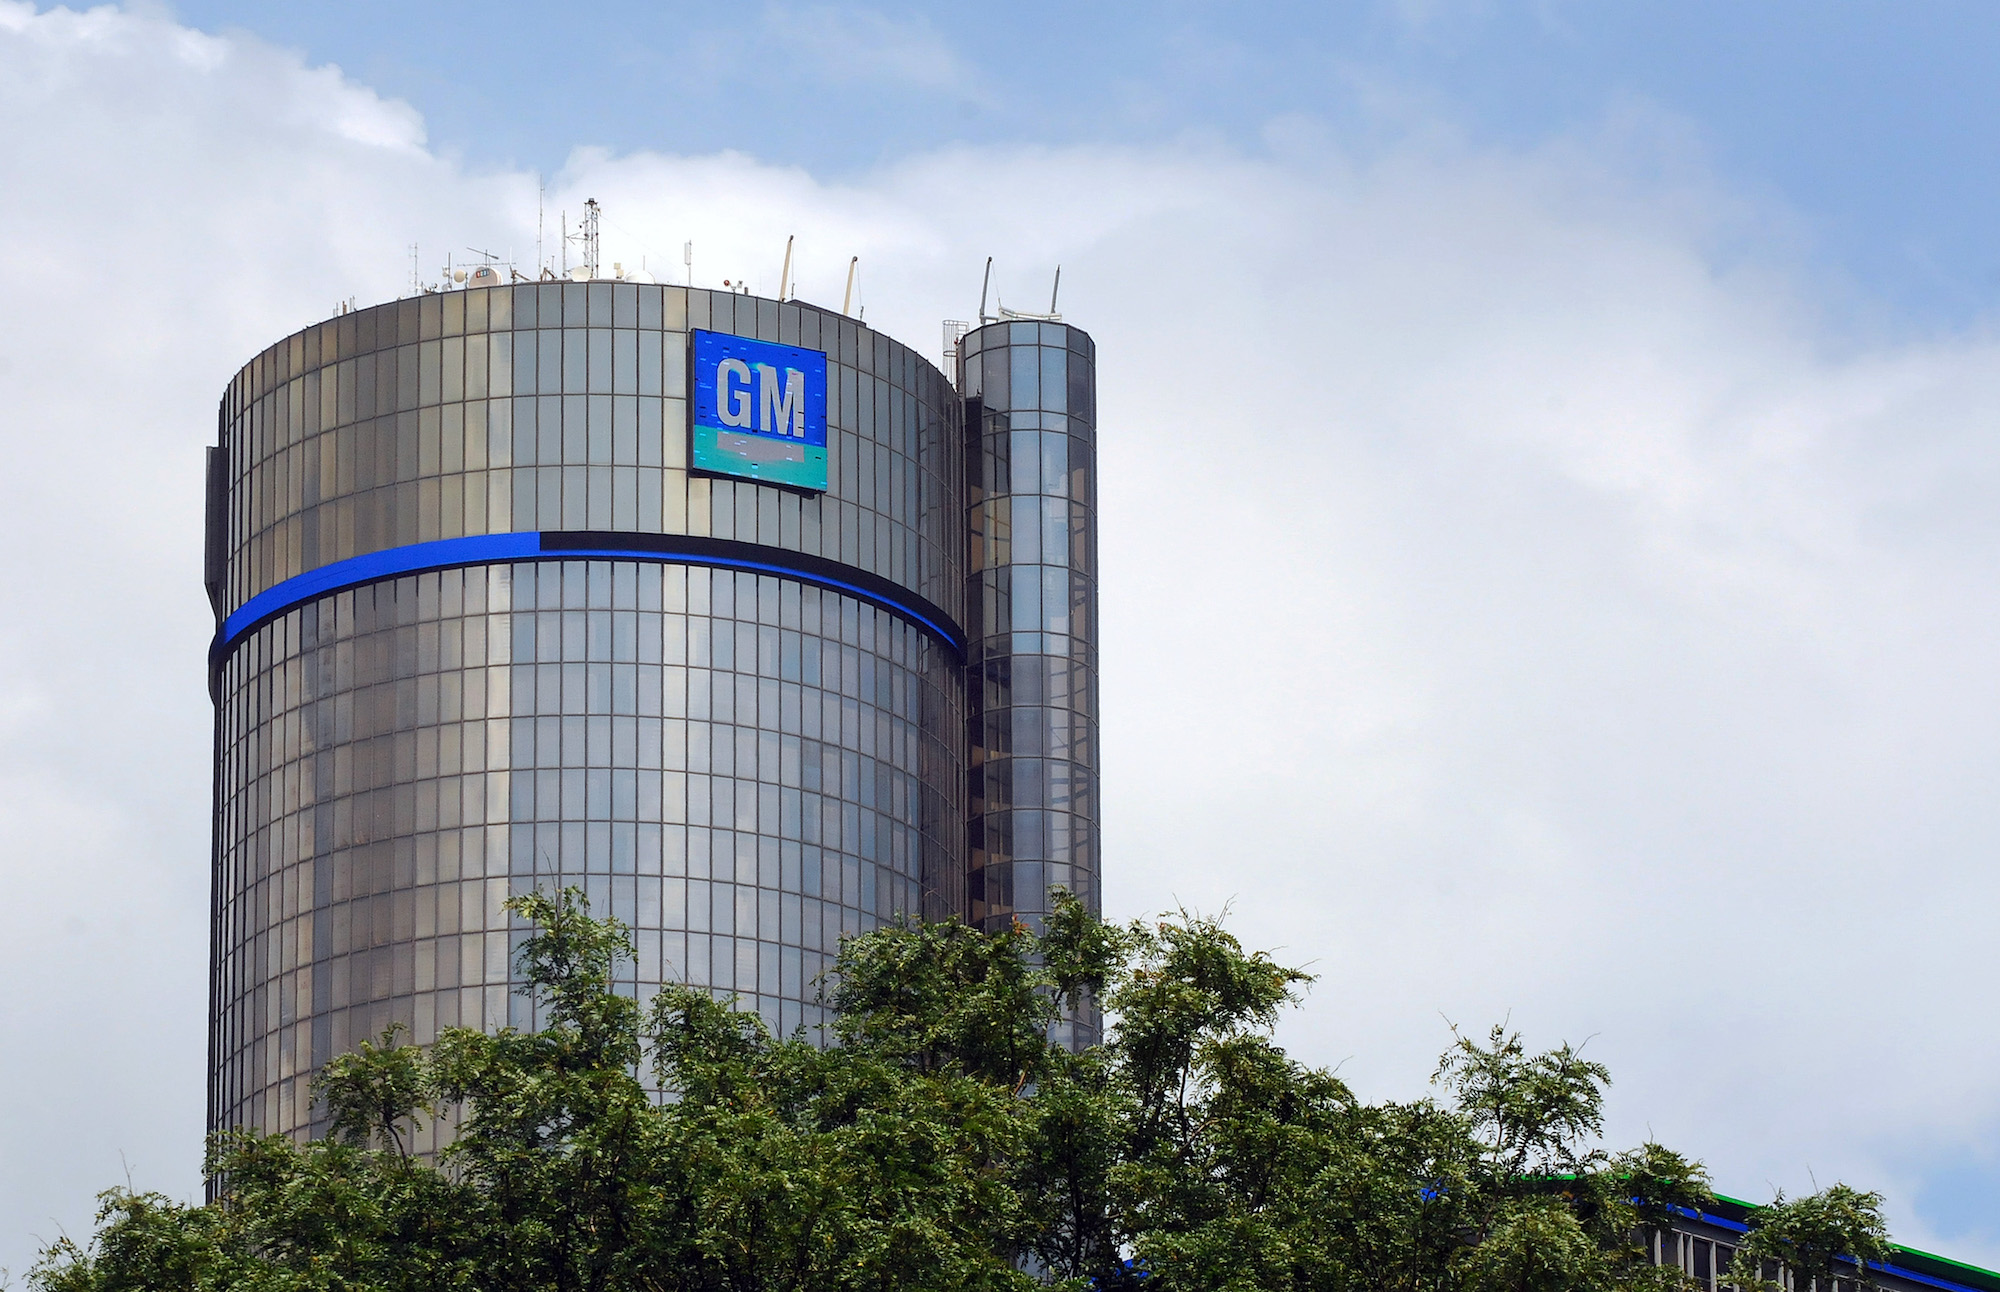 the General Motors headquarters building with a large GM logo on the side